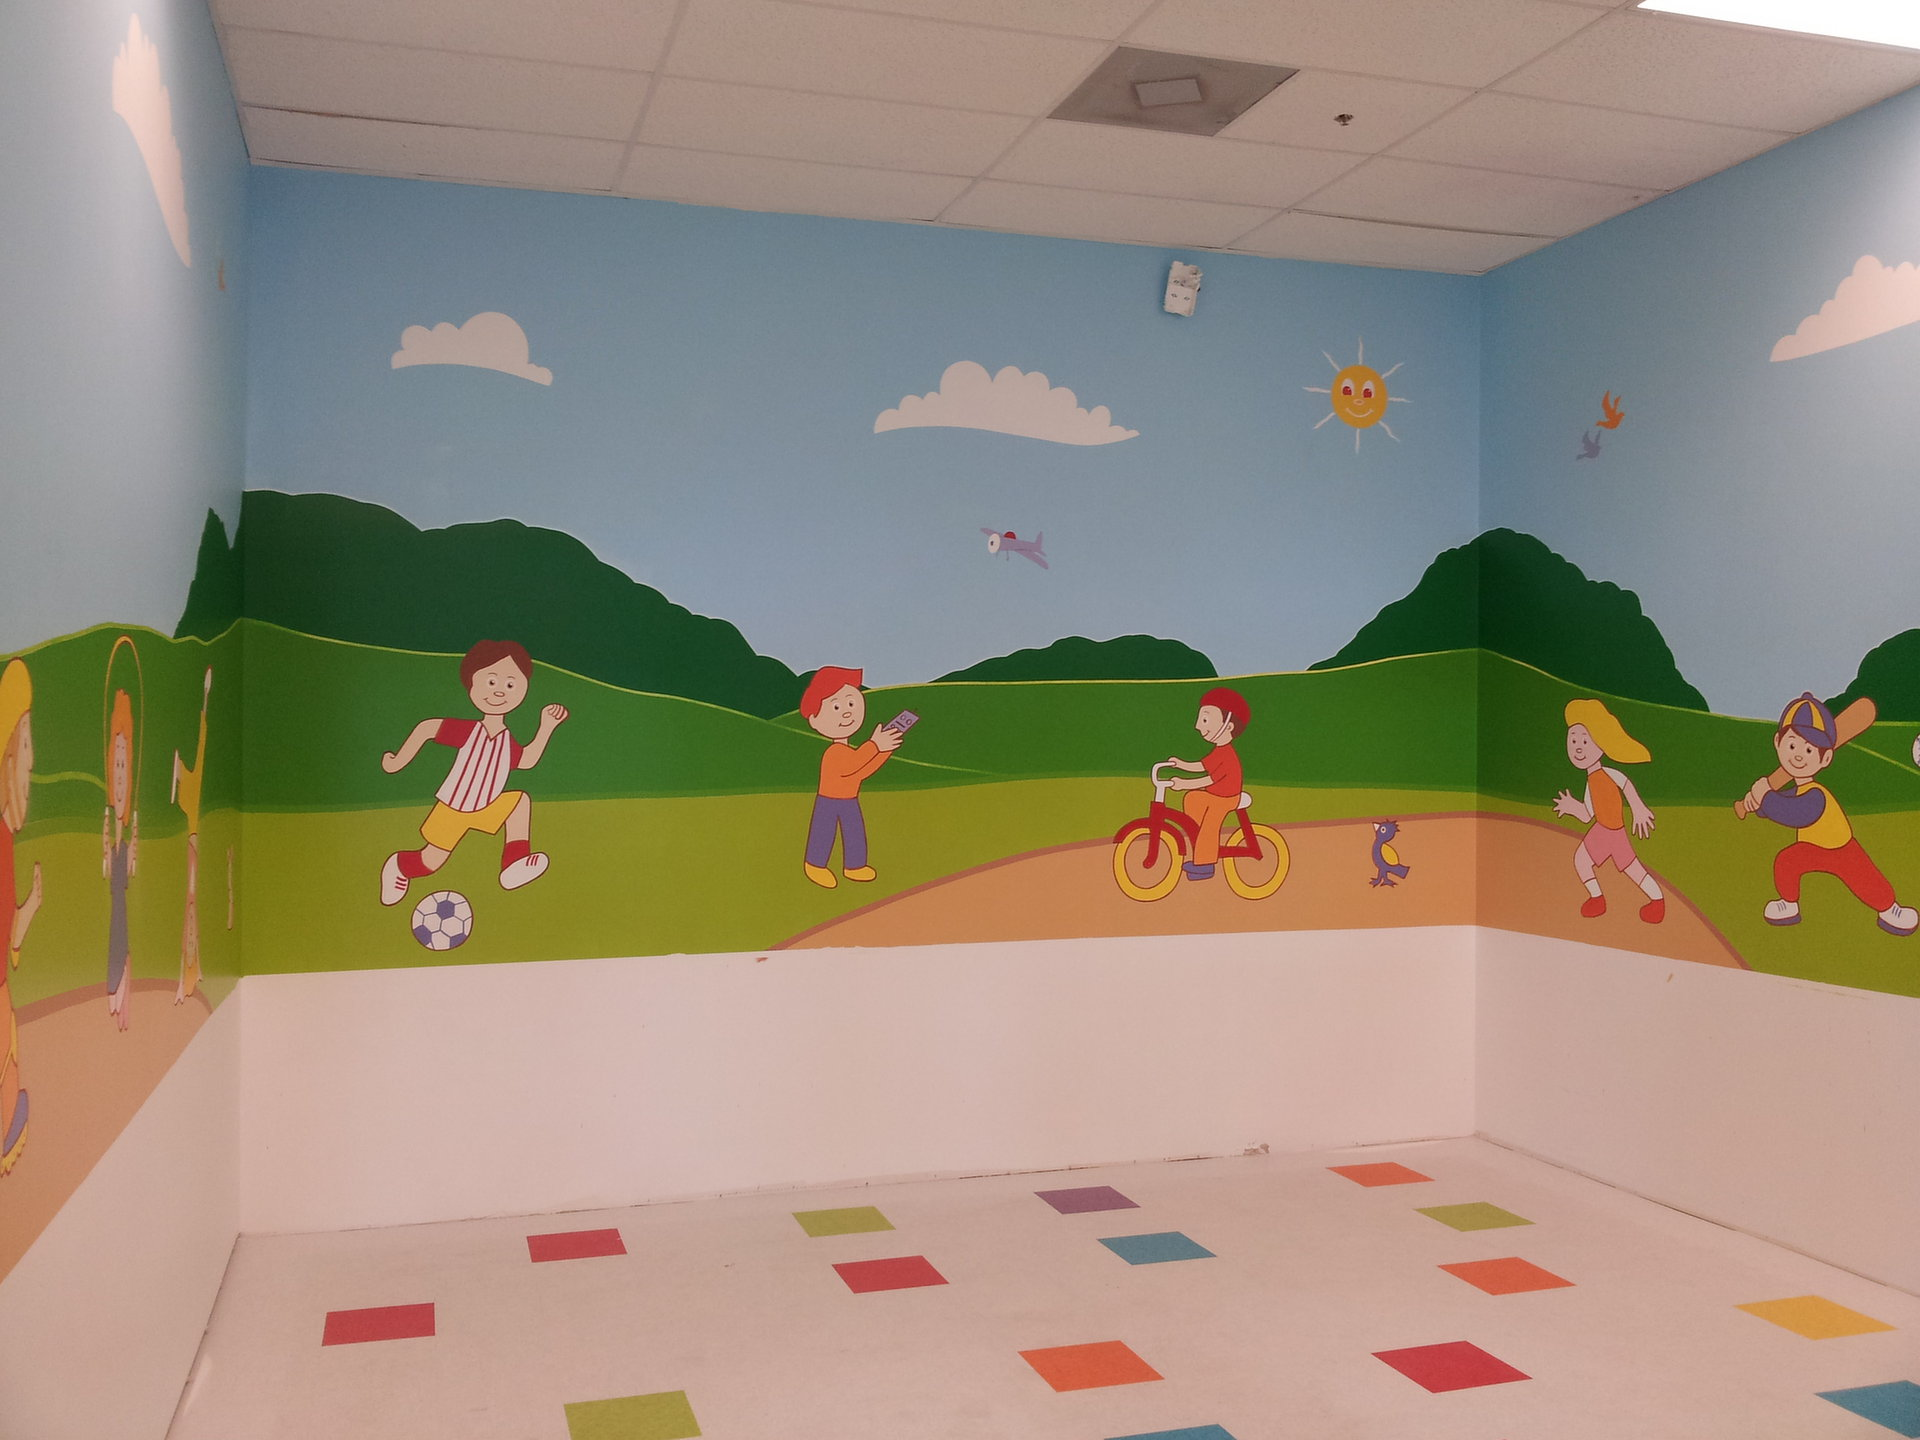 Wall Mural Kids playing CREATED BY PAUL MAXWELL GODFREY